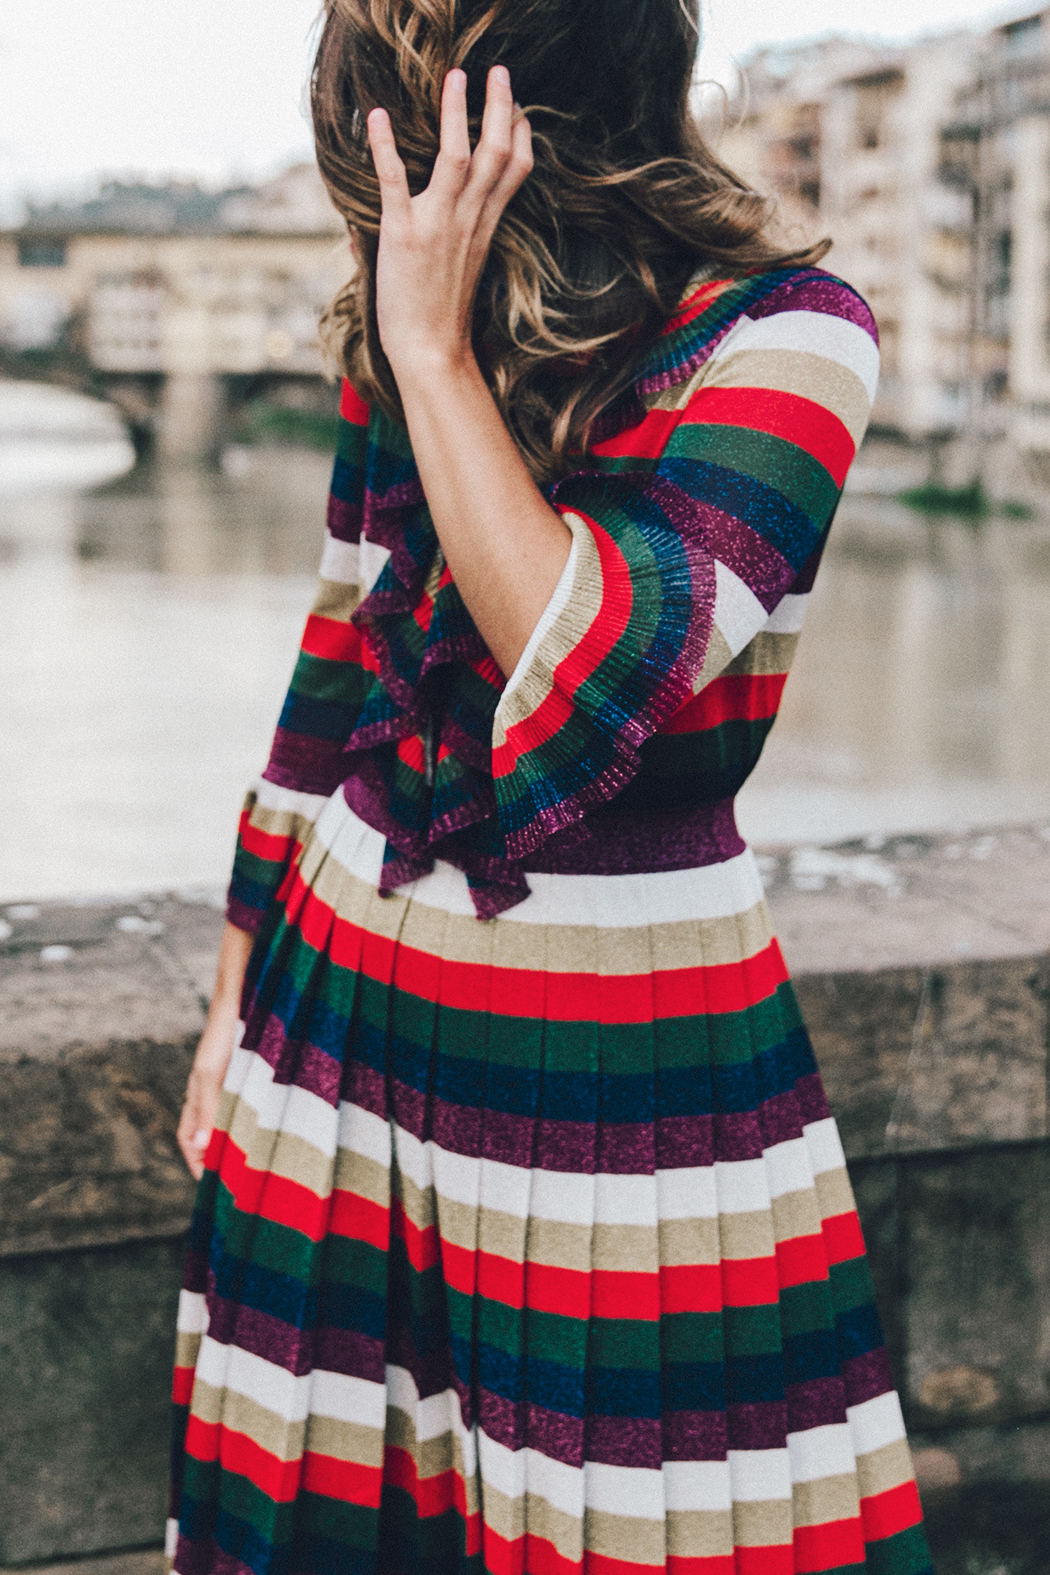 Firenze4Ever-Luisa_VIa_Roma-Gucci_Striped_Dress-Gucci_Gold_Sandals-Outfit-Florence-Street_Style-11